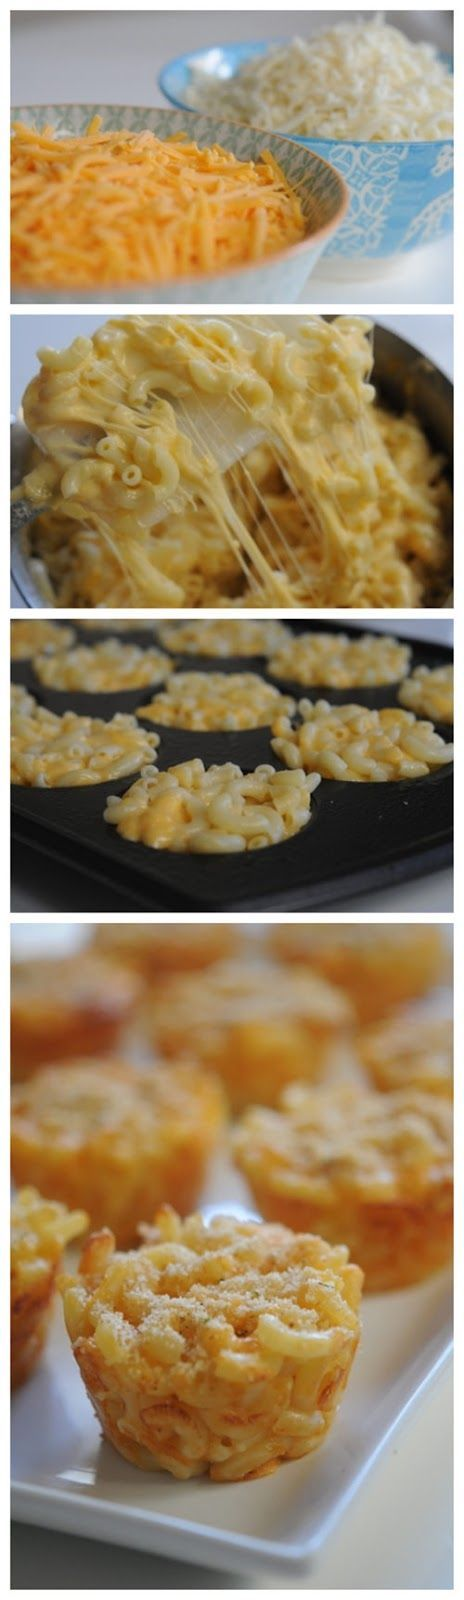 Start Recipes: Mac And Cheese Cups - need this to make the Halloween Mac and Cheese